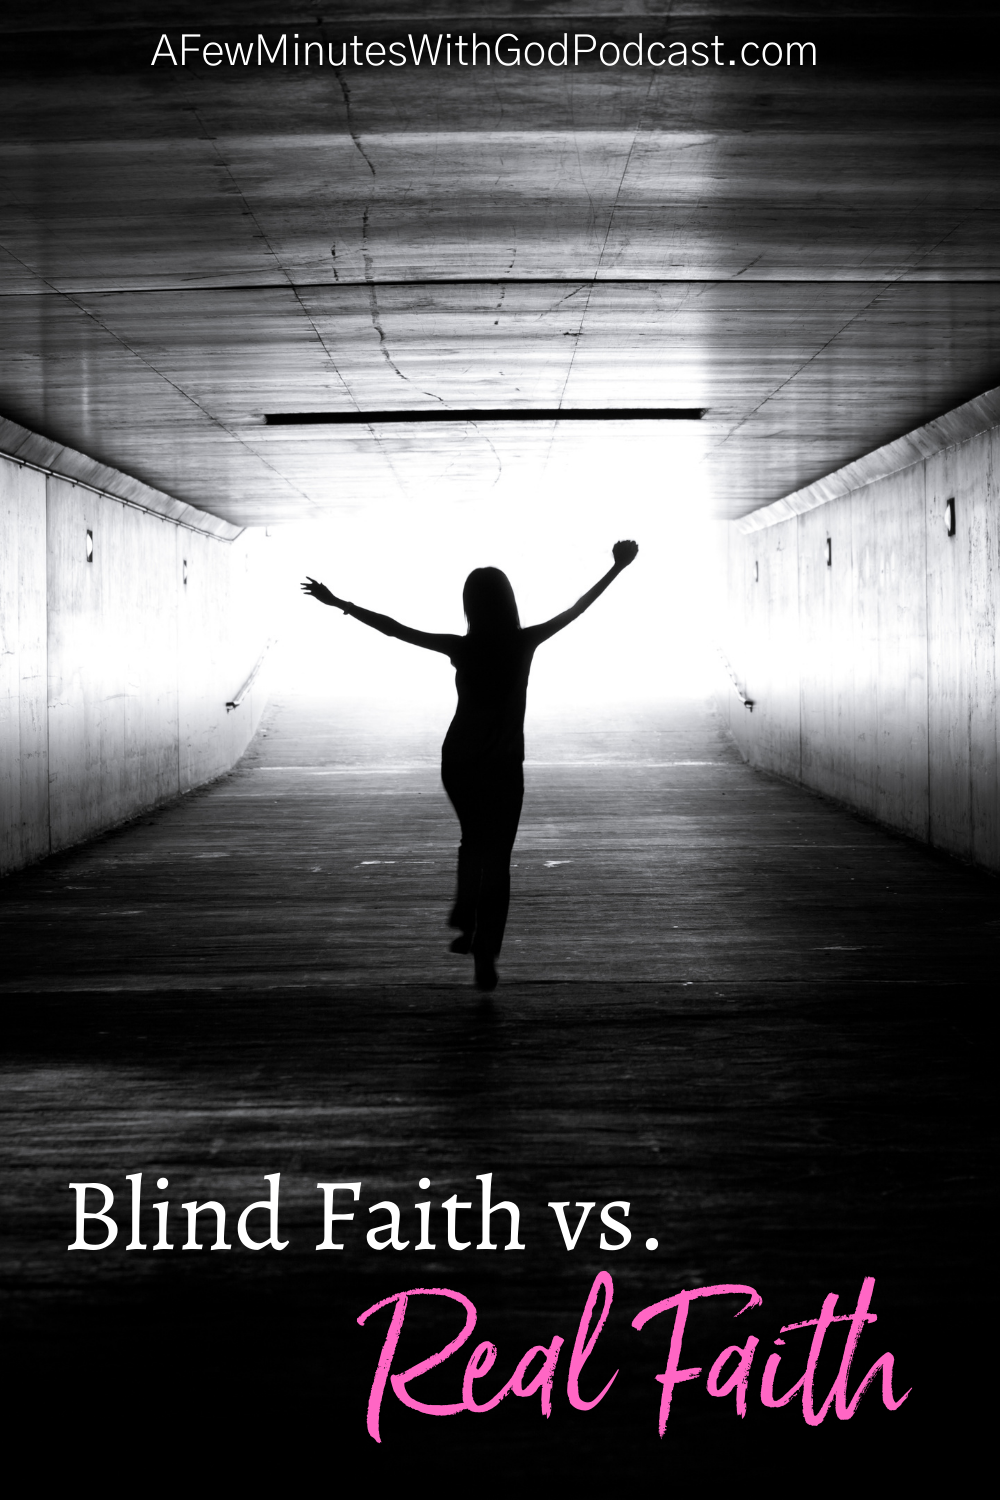 Blind faith is not what is required of us. We should question and wonder in our walk with the Lord, but truthfully while we believe without seeing, it is far from blind faith. #podcast #christianpodcast